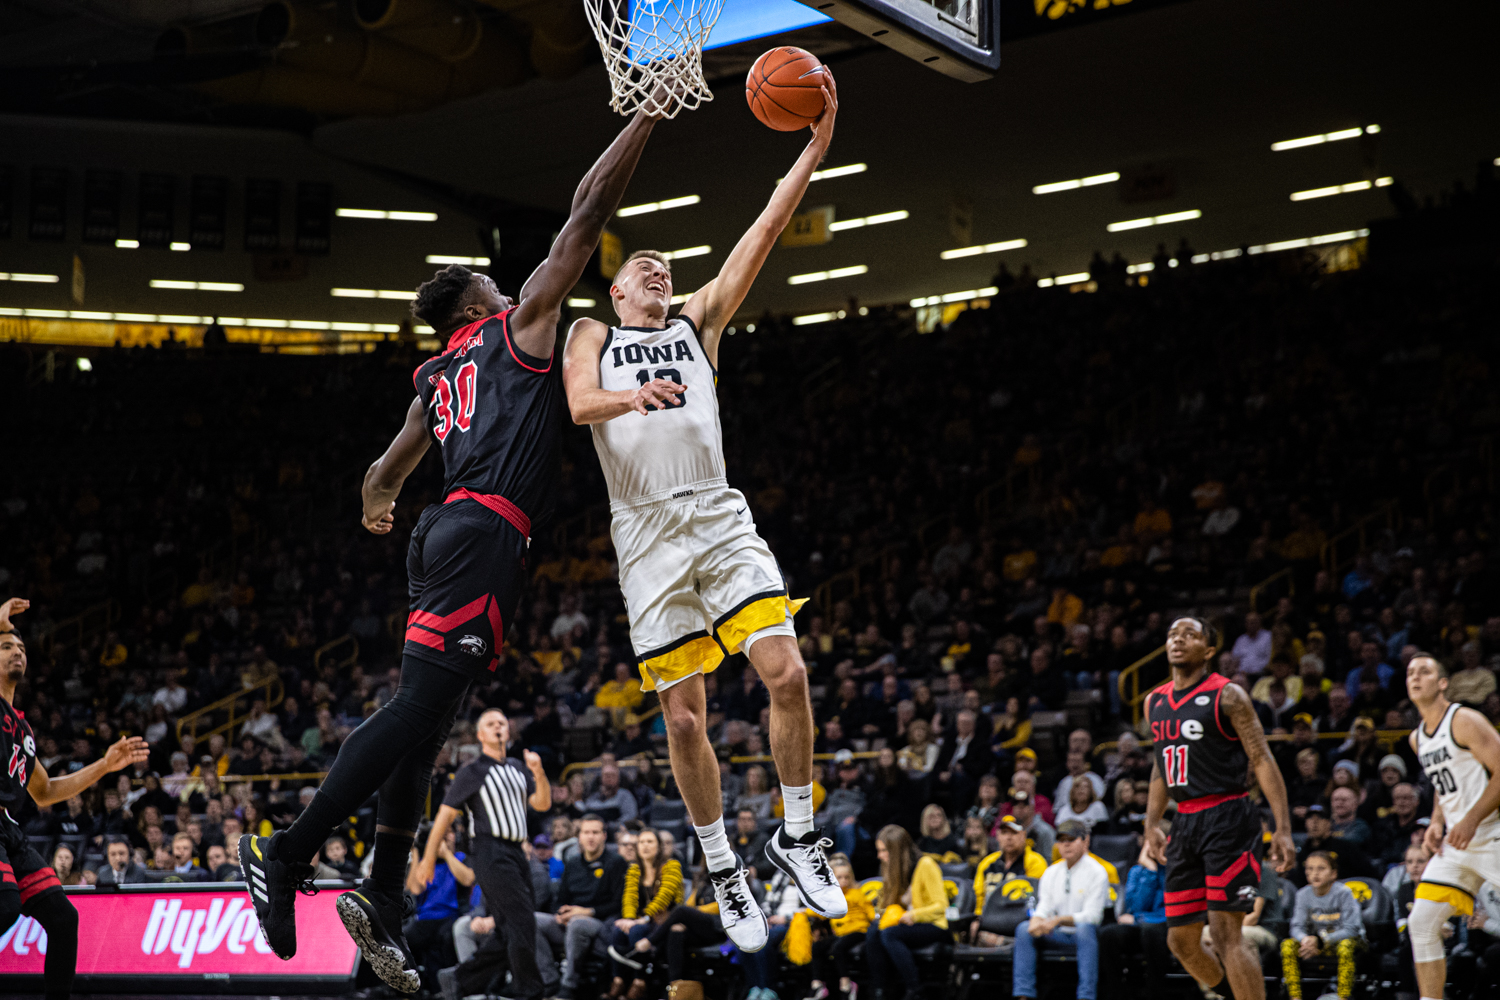 Iowa guard Joe Wieskamp goes for a layup during a men's basketball game between Iowa and Southern Illinois-Edwardsville at Carver-Hawkeye Arena on Friday, Nov. 8, 2019. Wieskamp played for 27:47 and scored 16 points in the win.